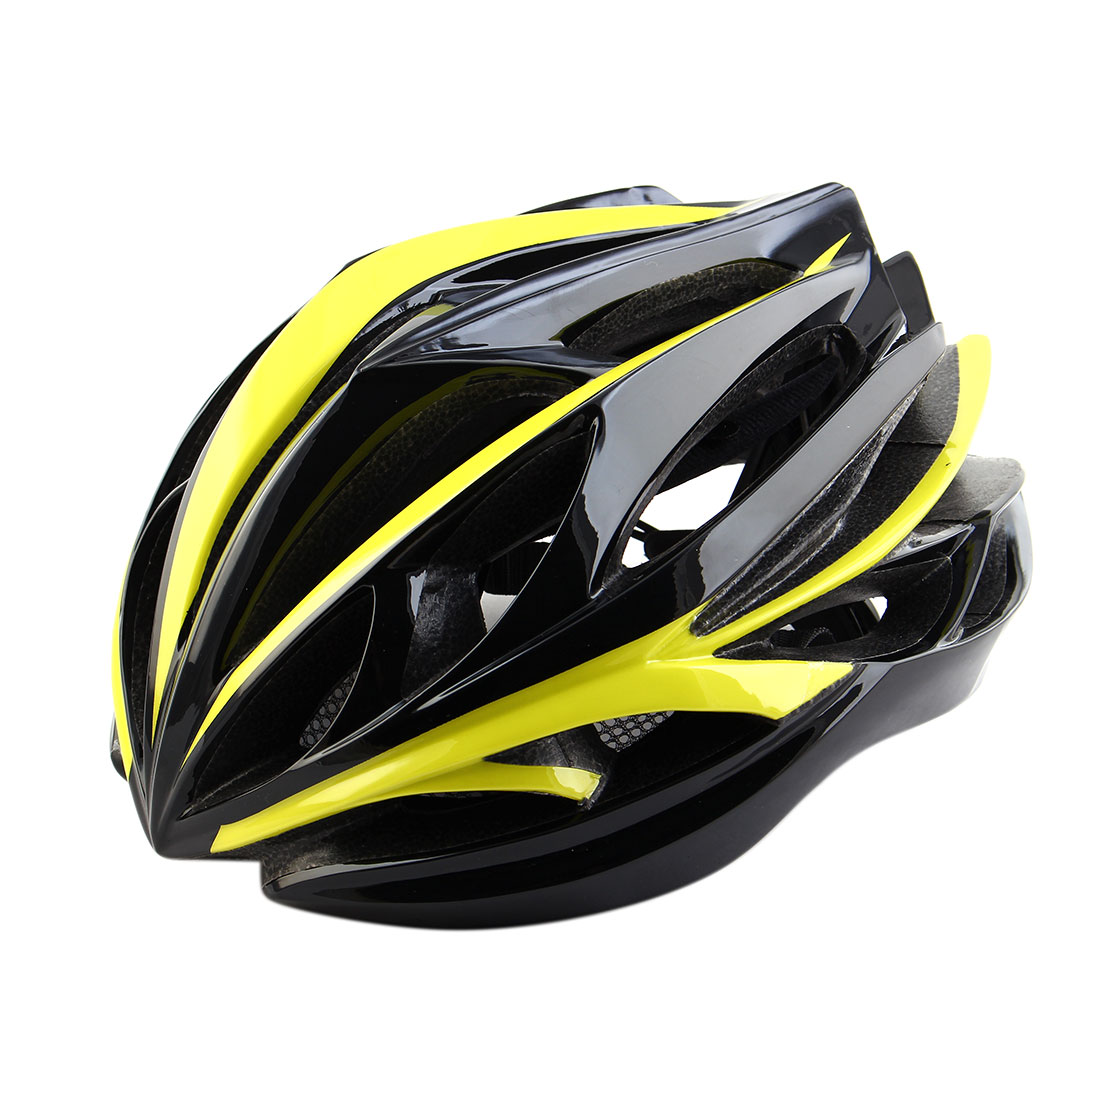 Patent Authorized Adult Unisex 22 Holes Cycling Cap Bicycle Hat Safety Protector Adjustable Bike Helmet Fluorescent Yellow